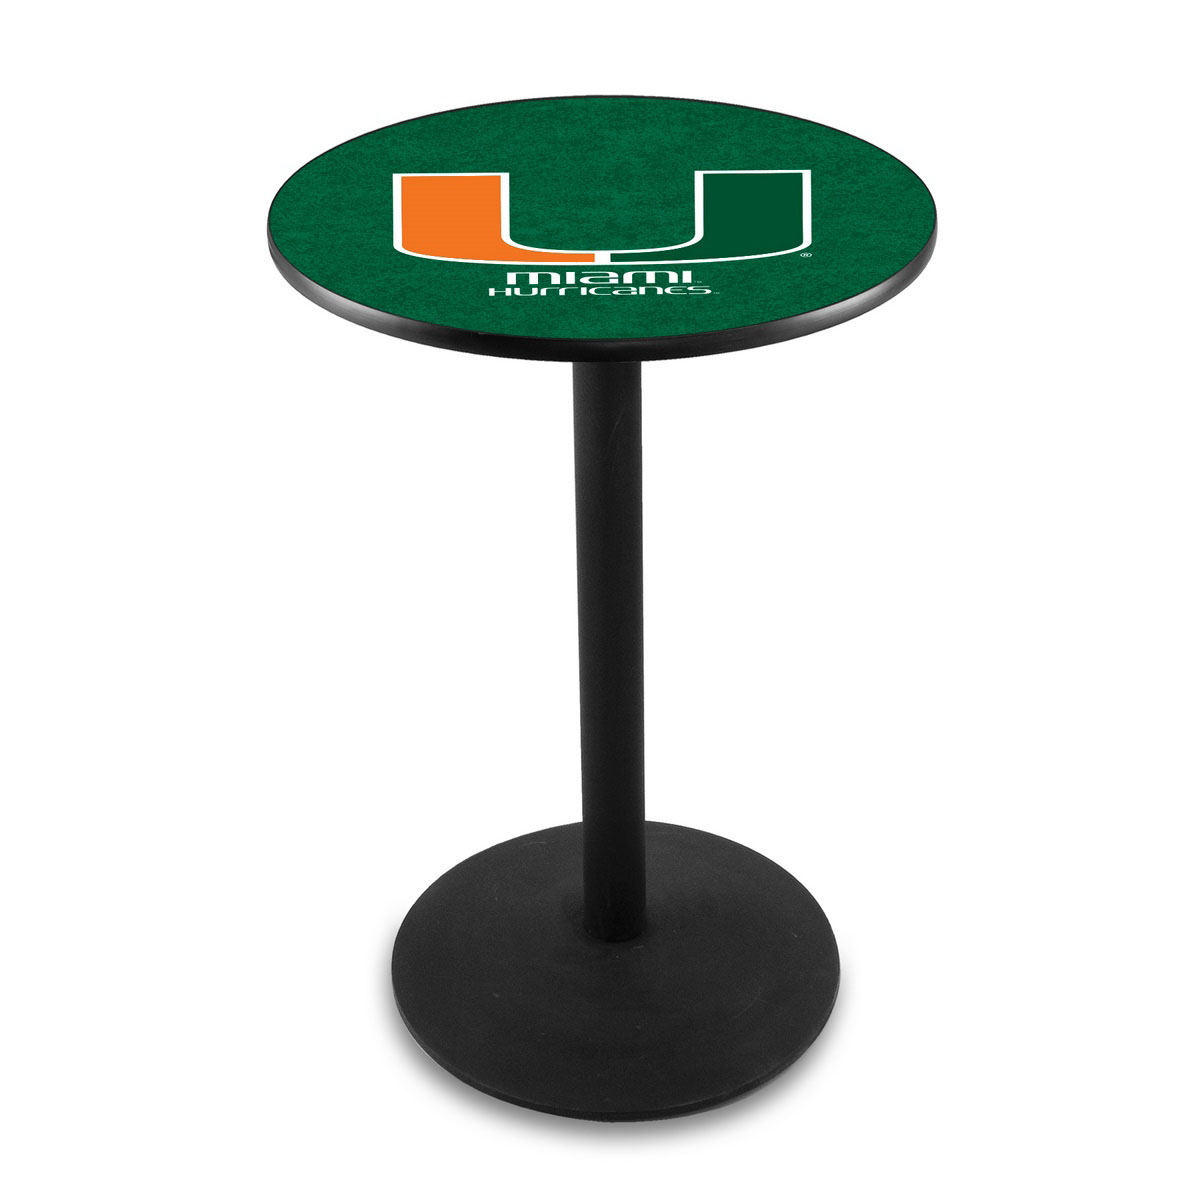 New University Miami Fl Logo Pub Bar Table Round Stand Product Photo